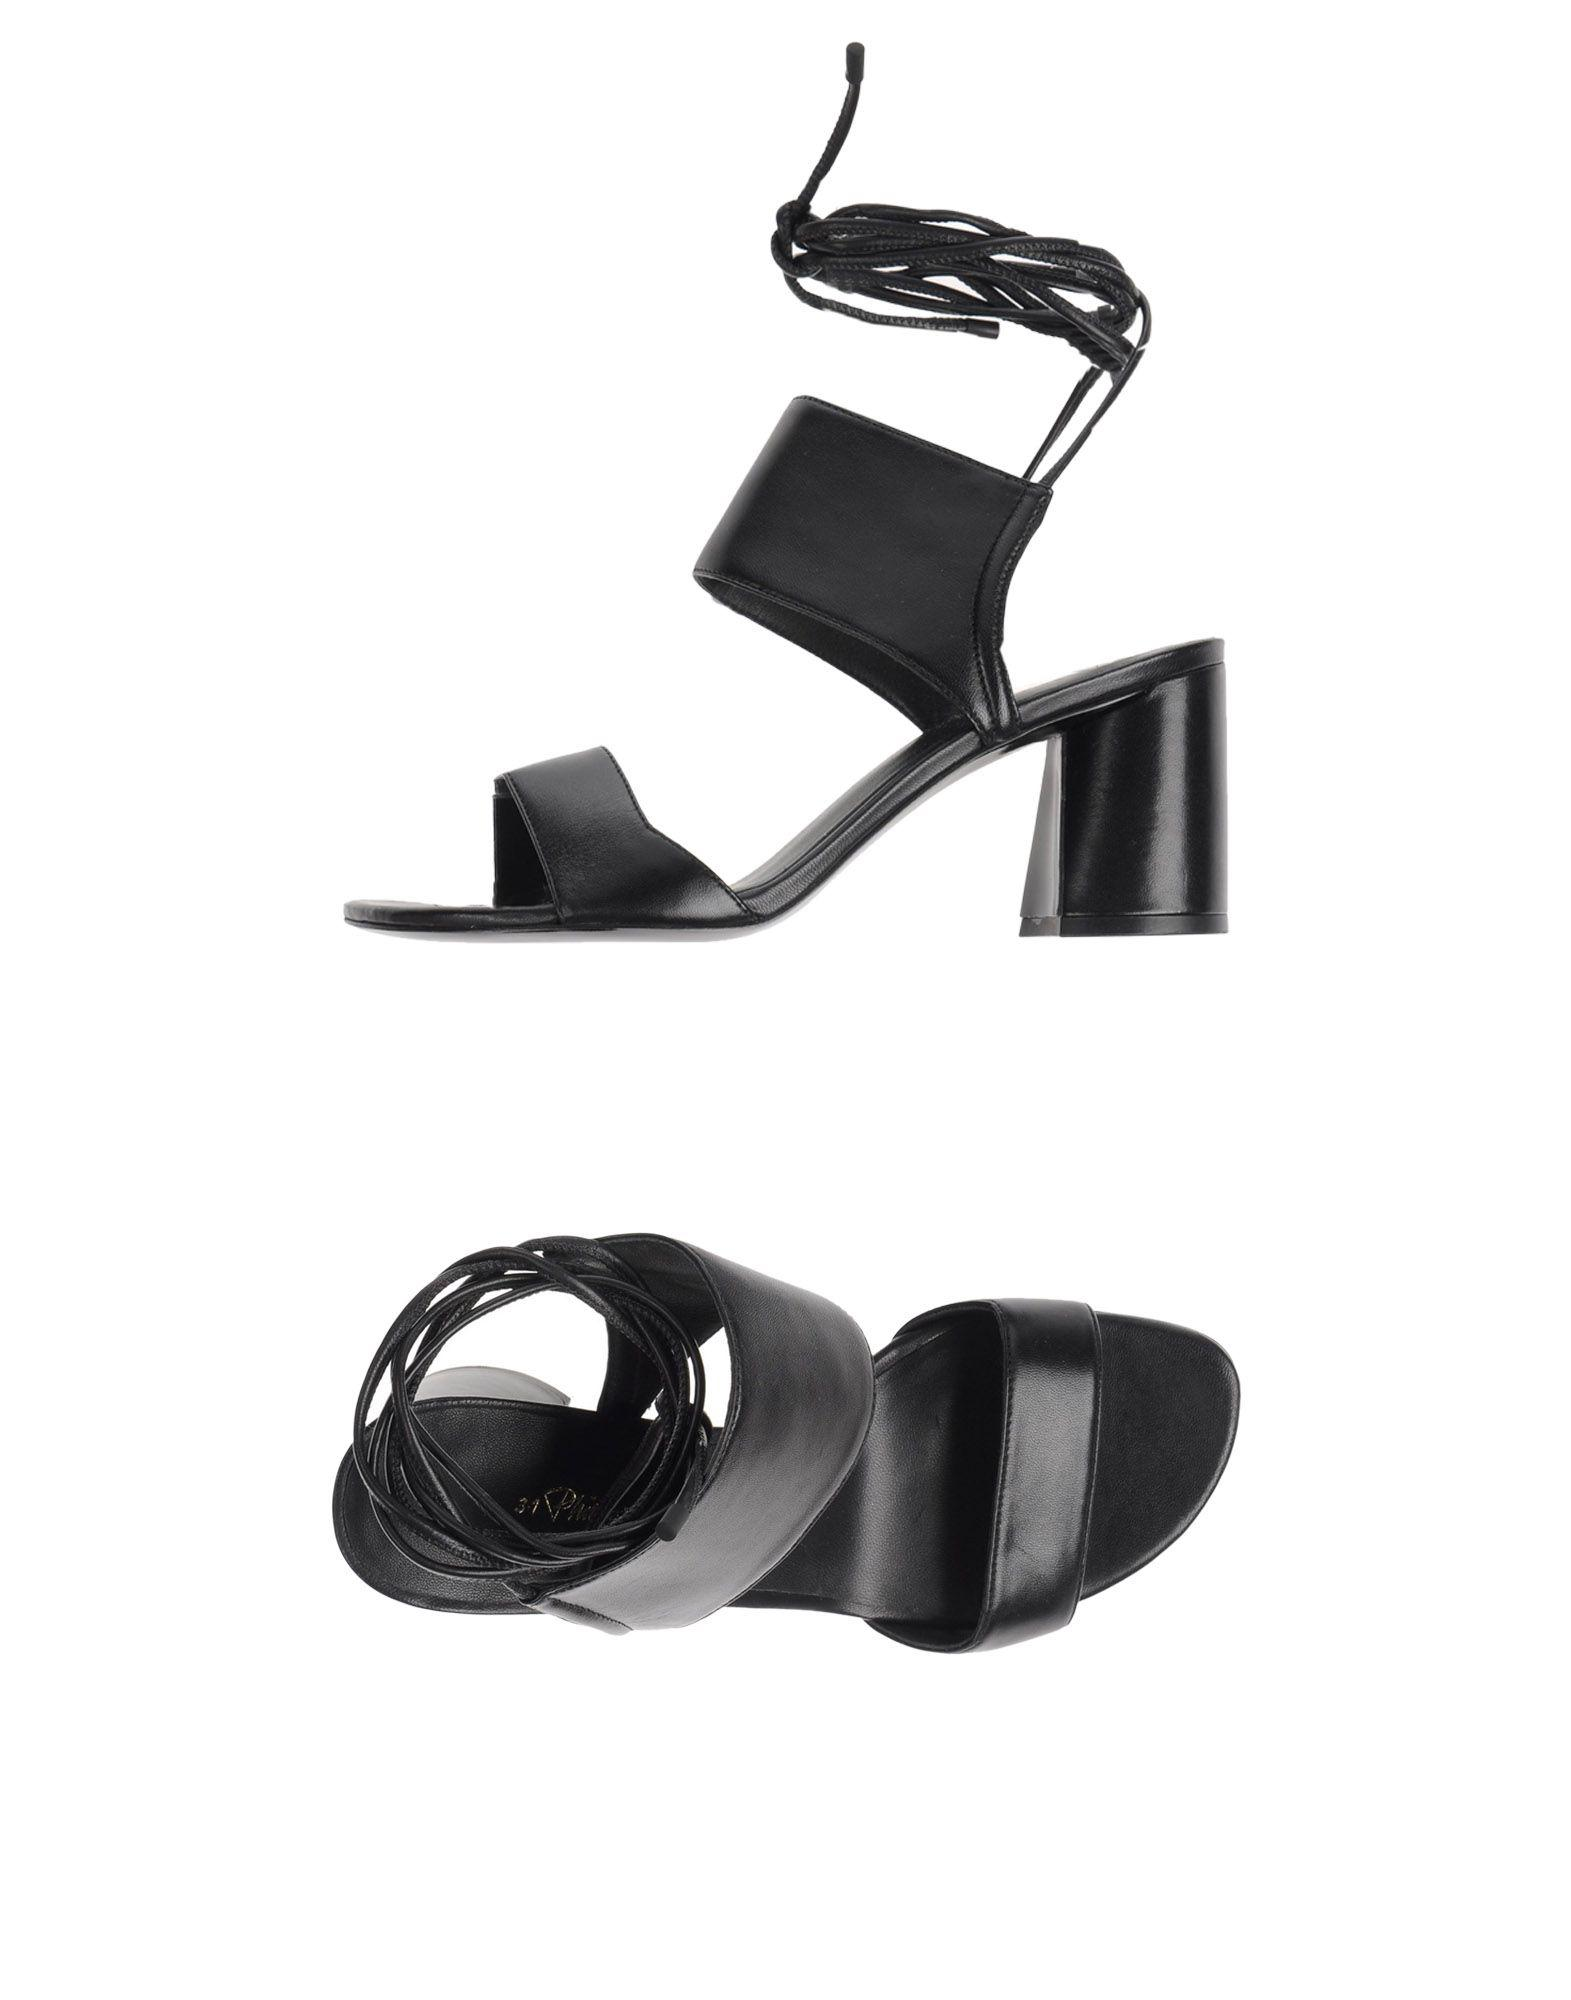 3.1 PHILLIP LIM Sandals. Laces Solid color Round toeline Leather sole  Geometric heel Leather lining Contains non-textile parts of animal origin. e8b310776